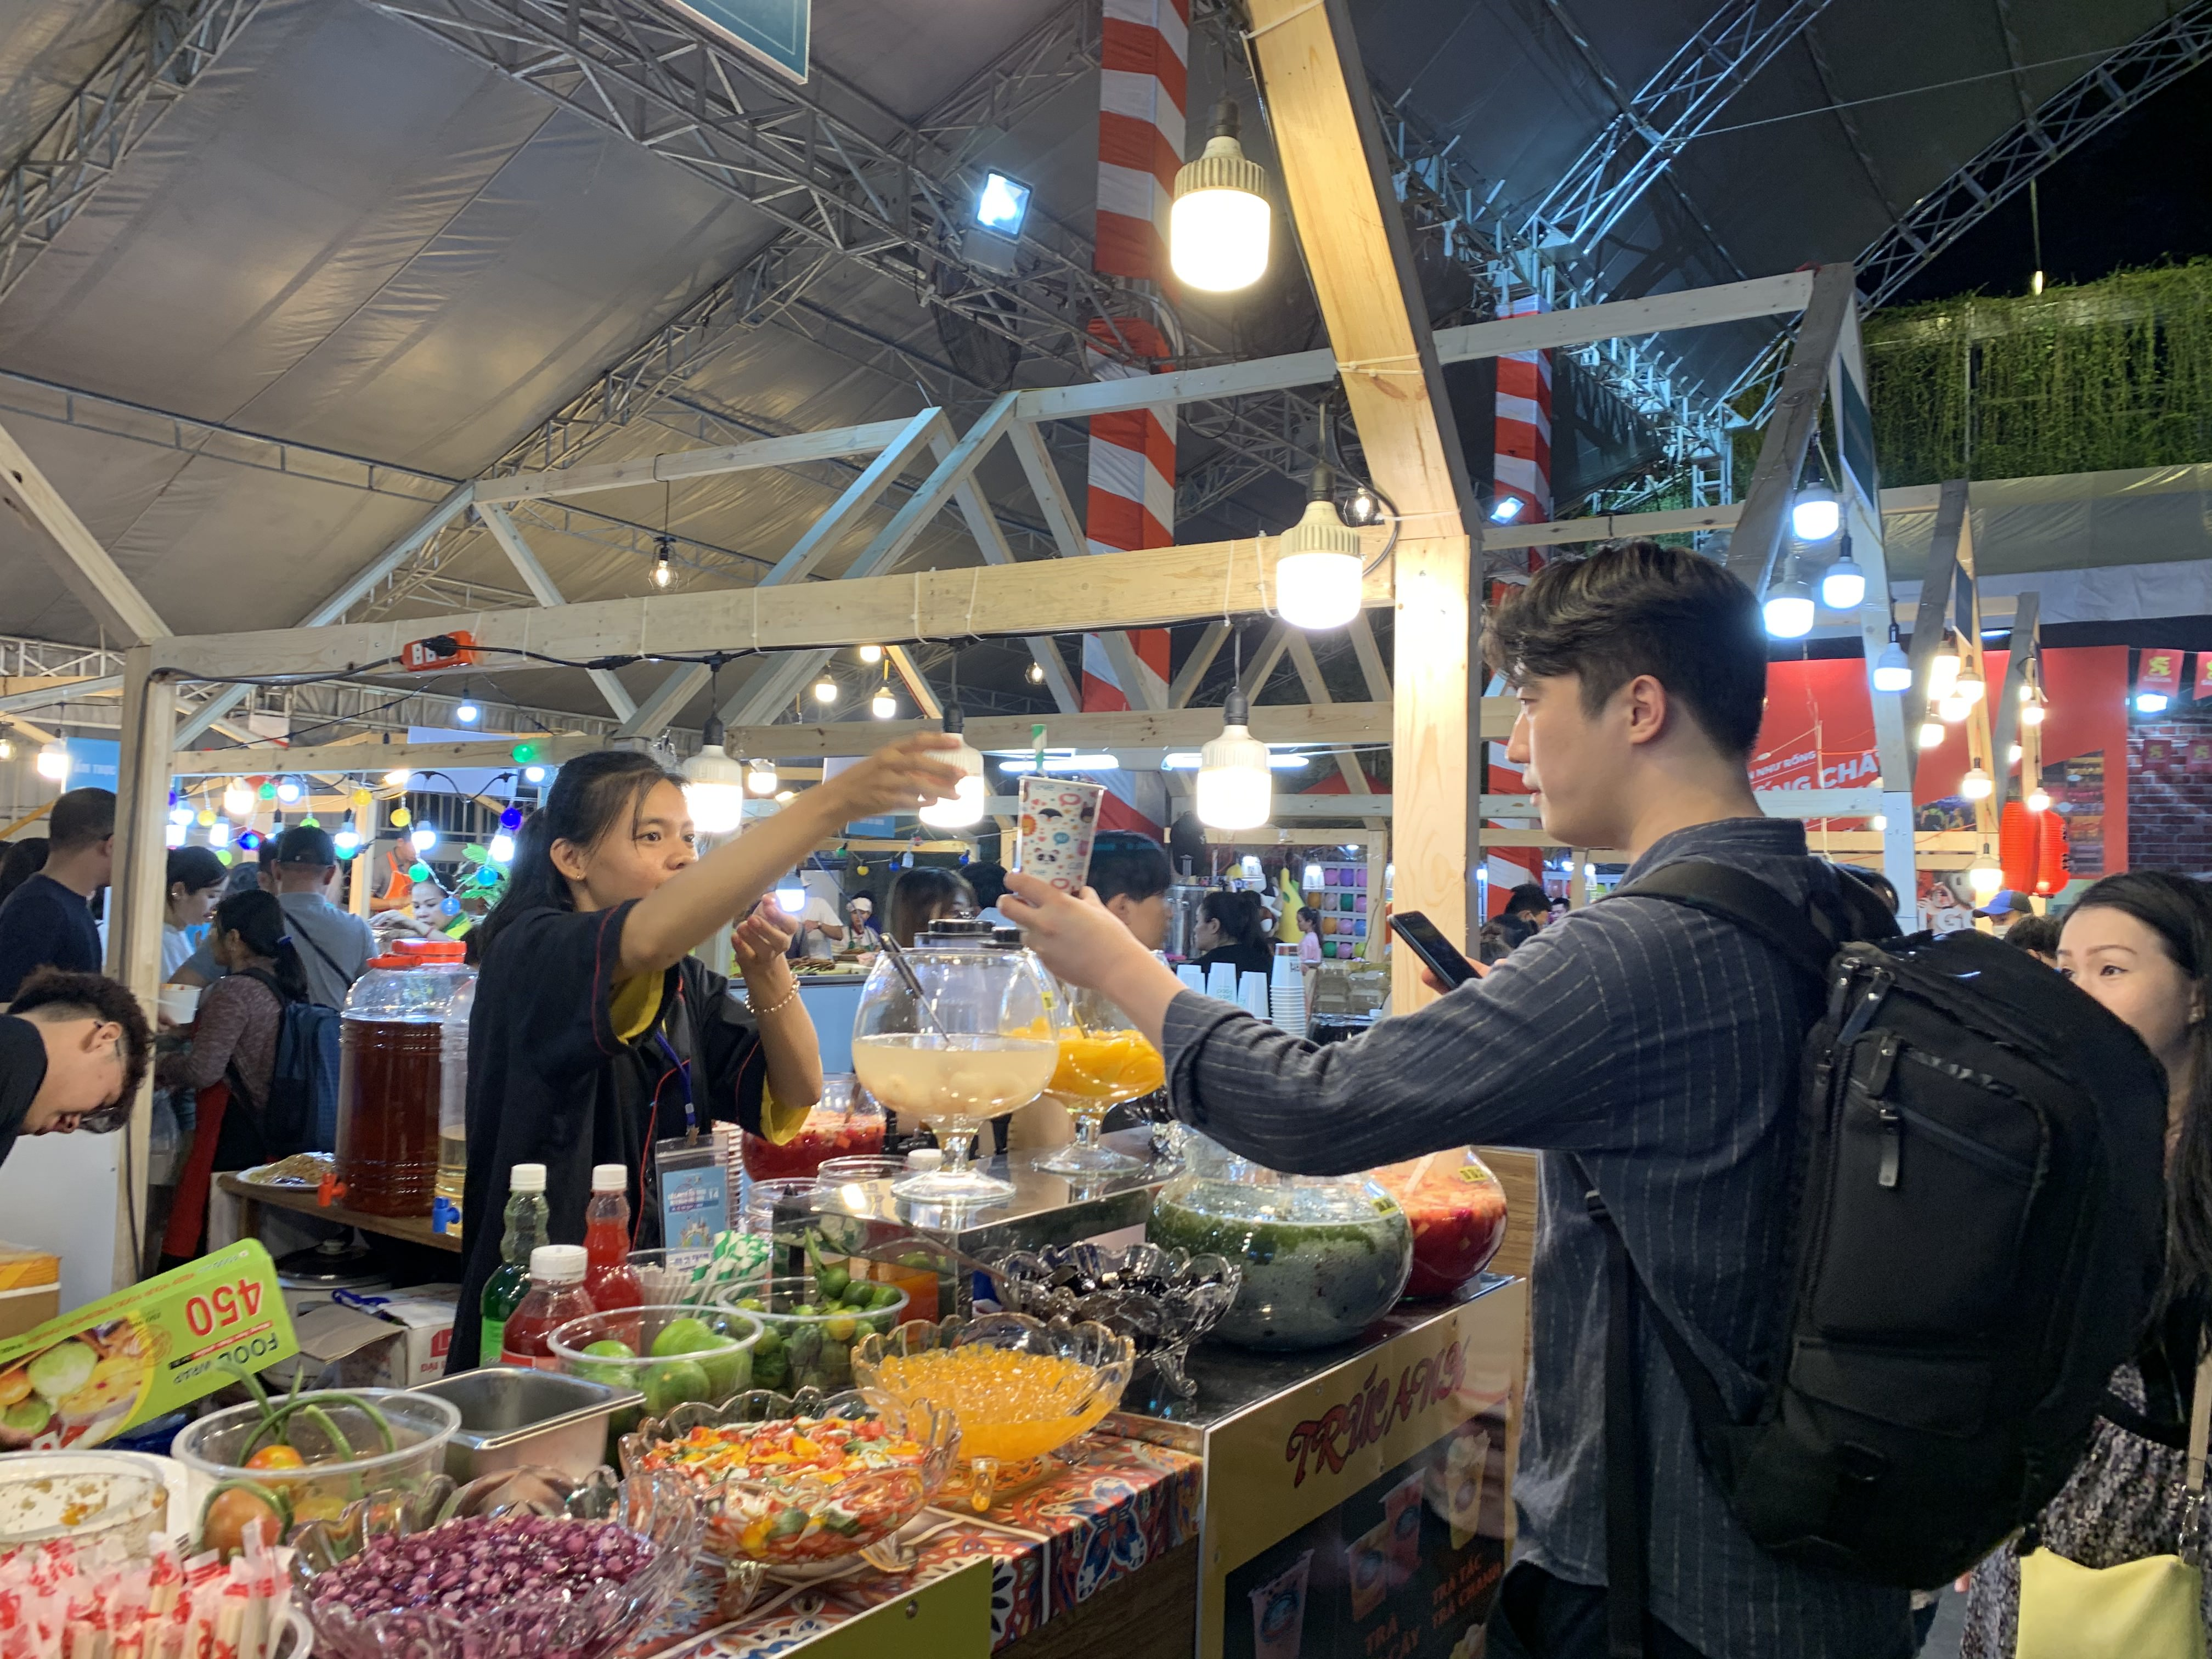 A South Korean visitor buys a drink from a stall at the international food festival held at the Youth Cultural House in District 1, Ho Chi Minh City, November 14, 2019. Photo: Bao Anh / Tuoi Tre News